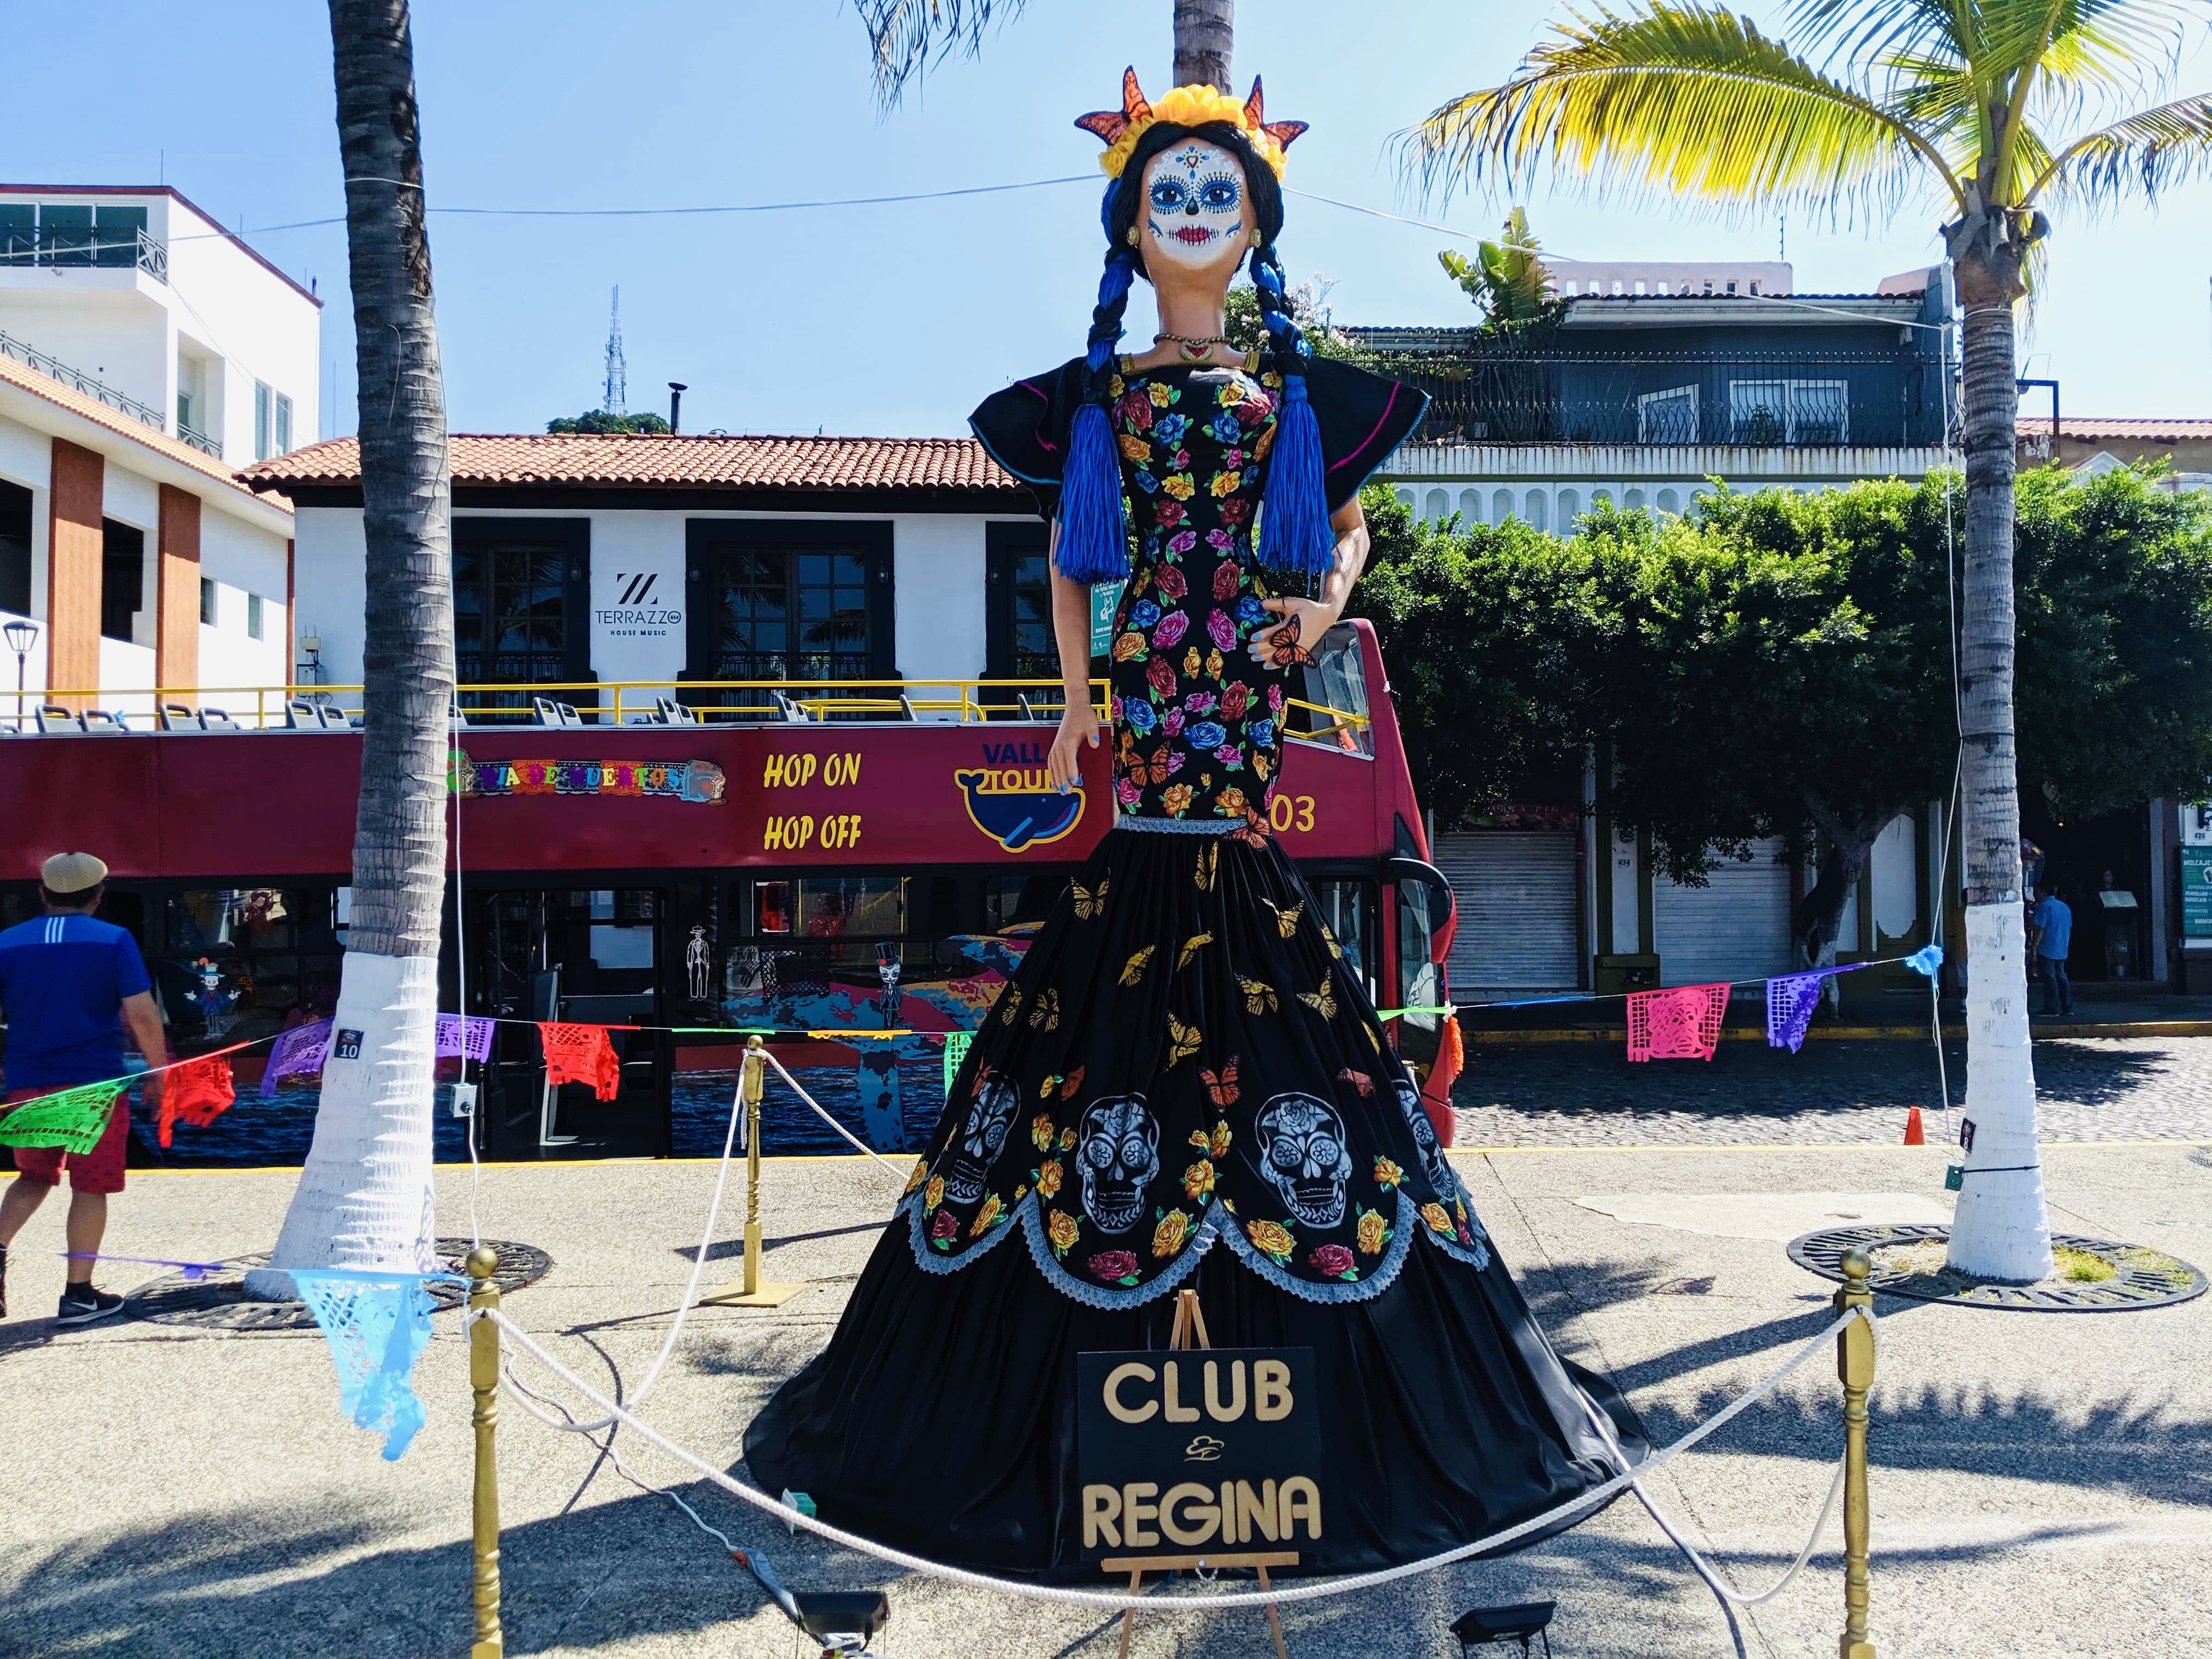 Club Regina Day of the Dead skeleton dressed up on Malecon, with shopfronts in background